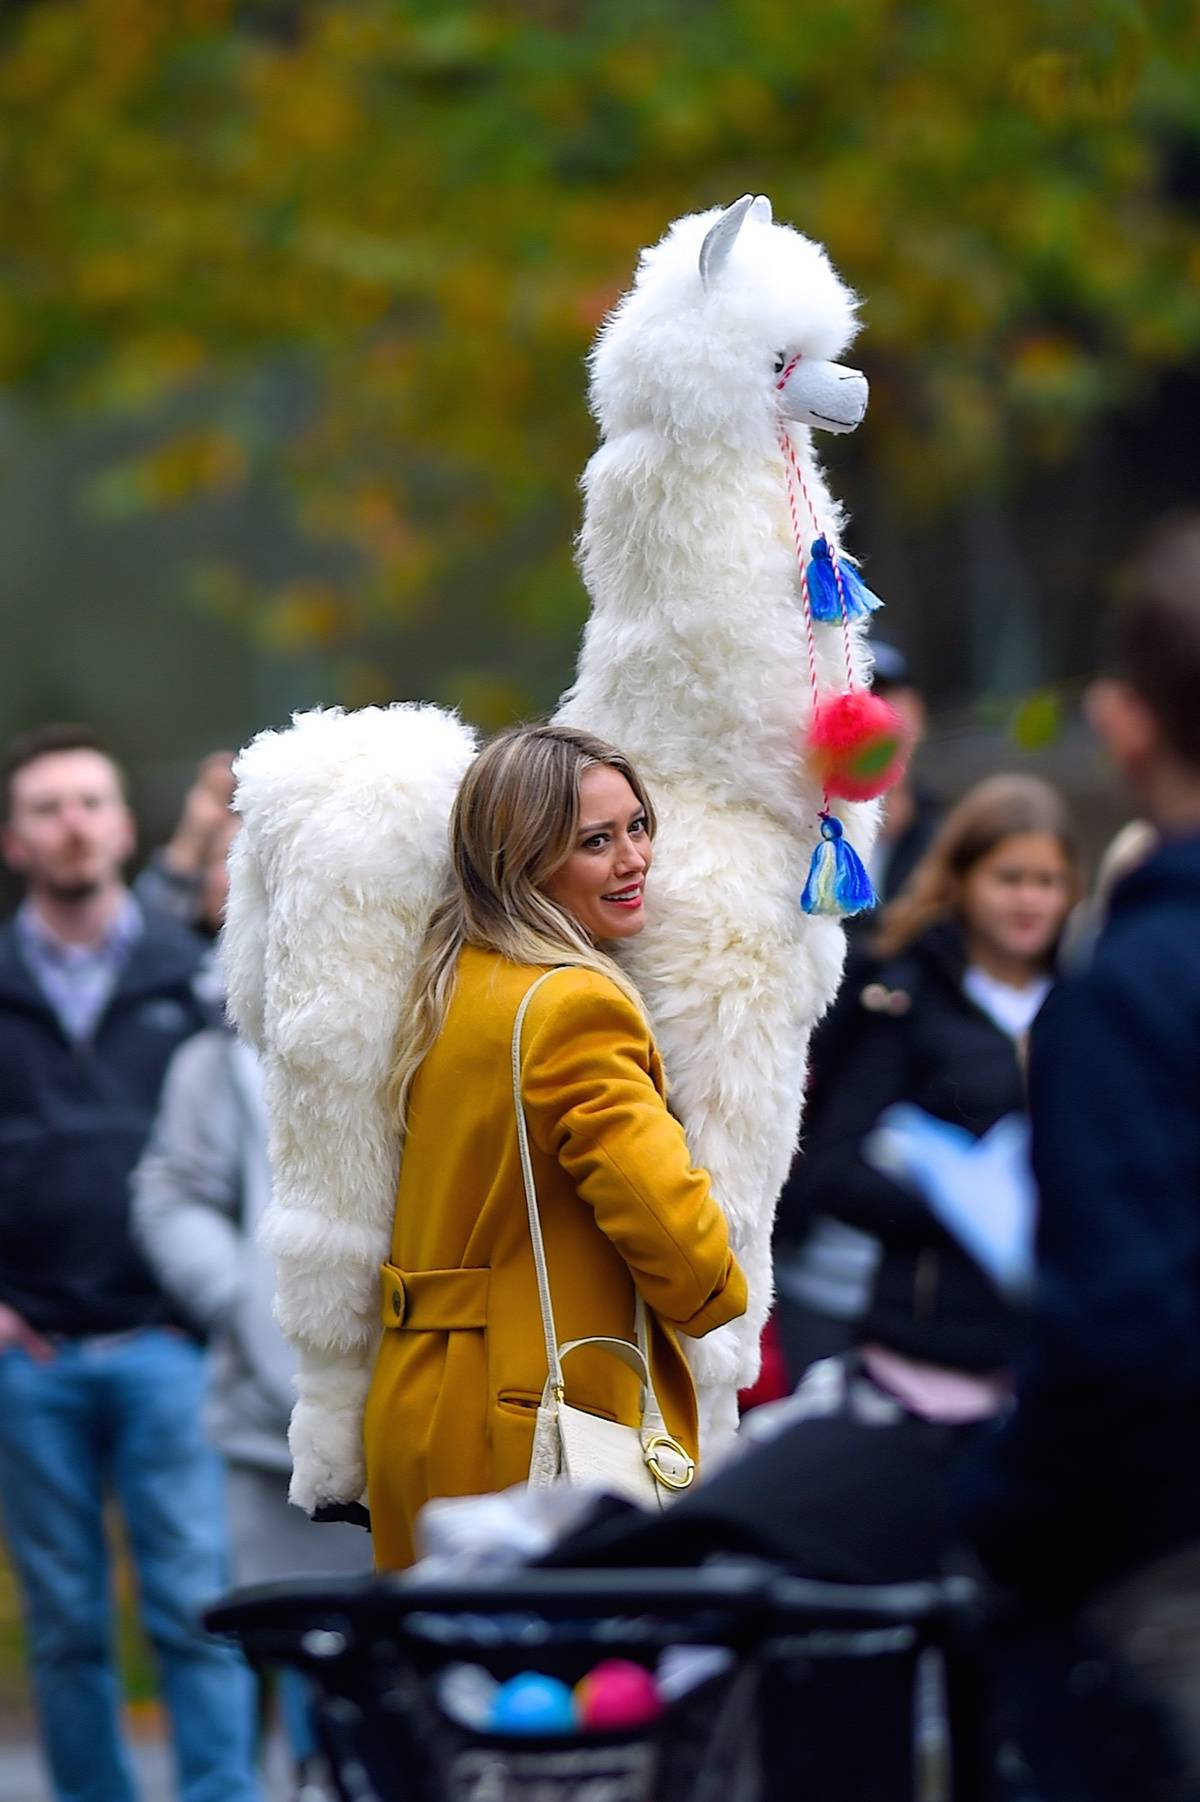 woman carrying large stuffed animal